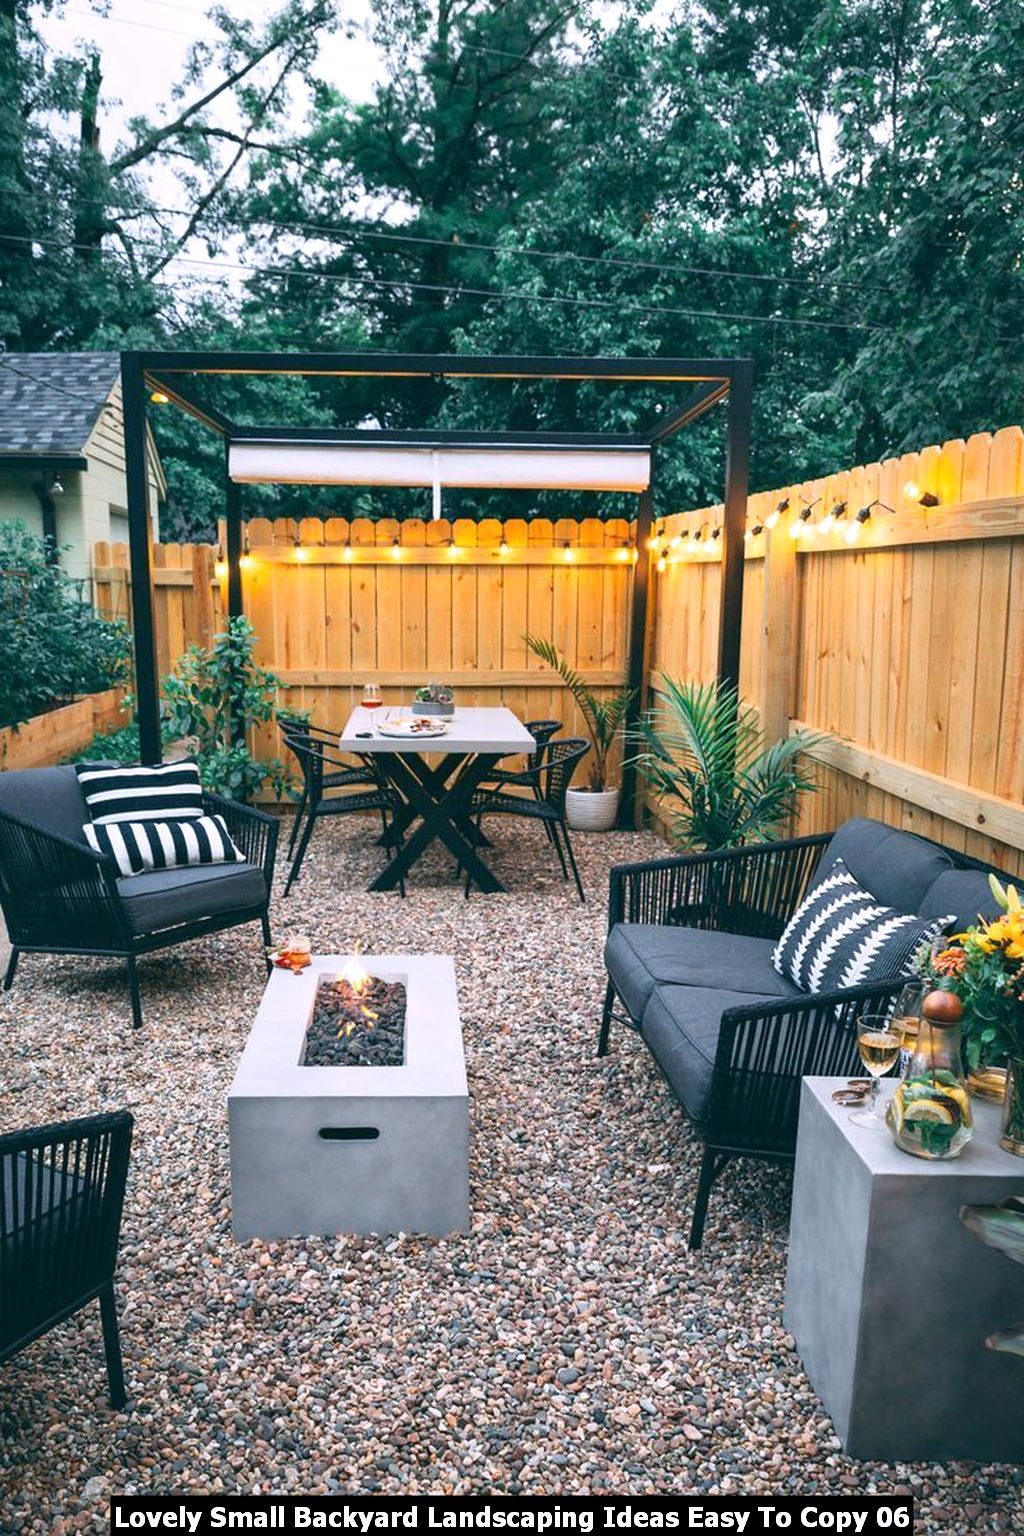 Lovely Small Backyard Landscaping Ideas Easy To Copy 06